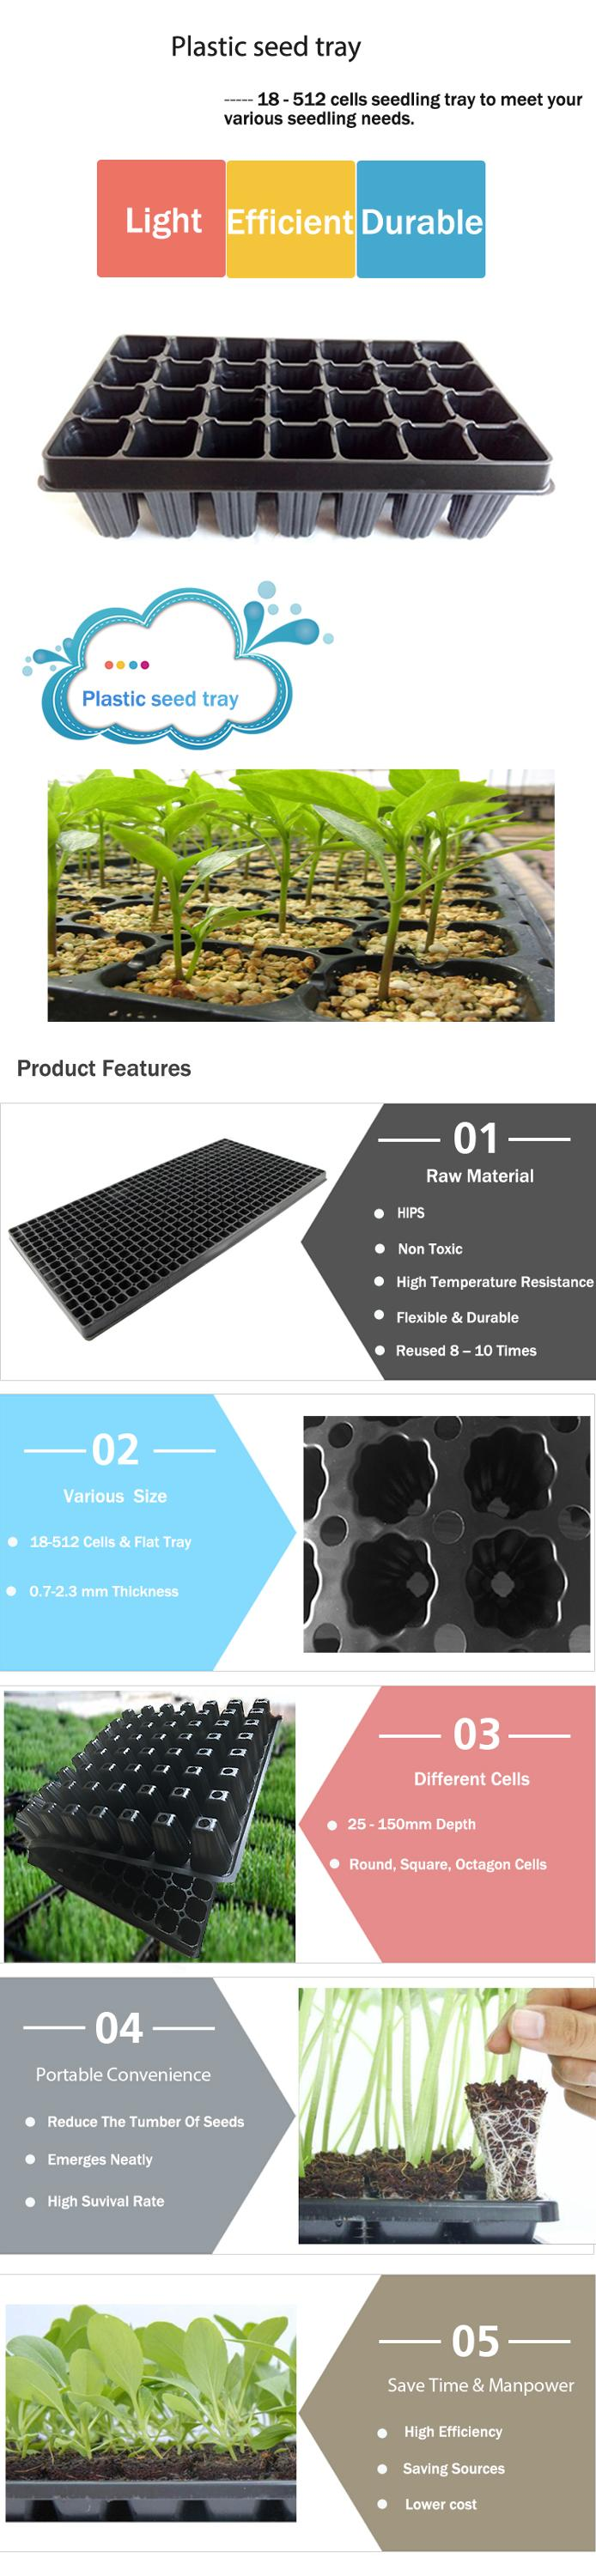 20*10 inch Black PS Material Rice Growing Tray For Seedling